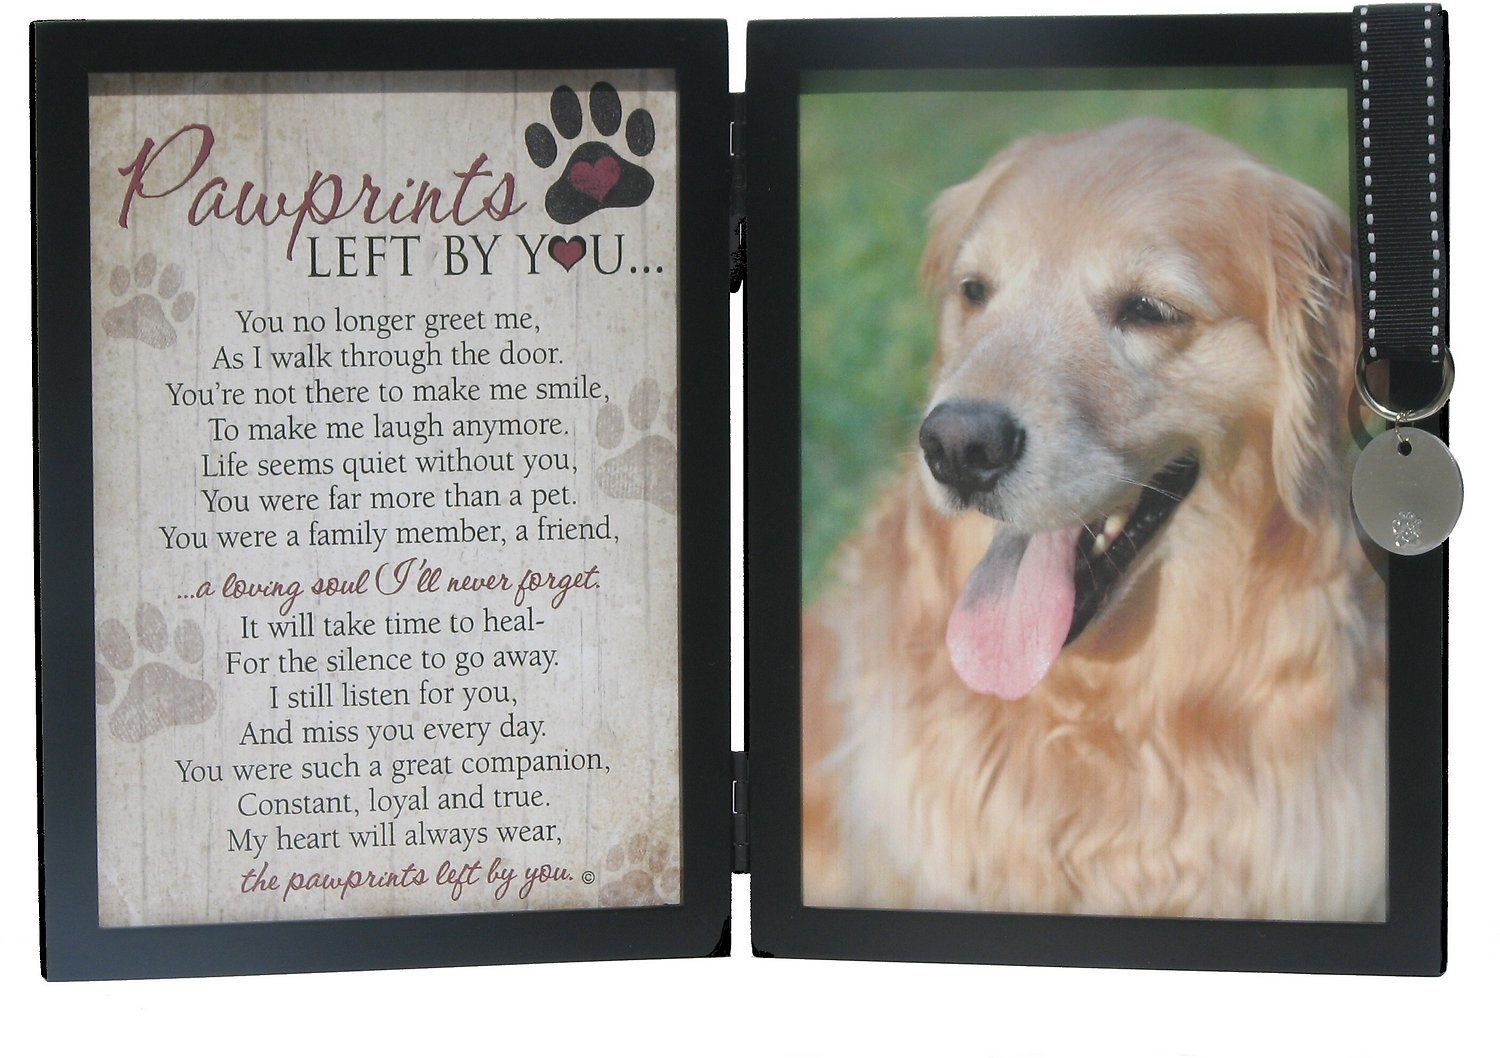 The grandparent gift co pawprints left by you dog picture frame video jeuxipadfo Image collections